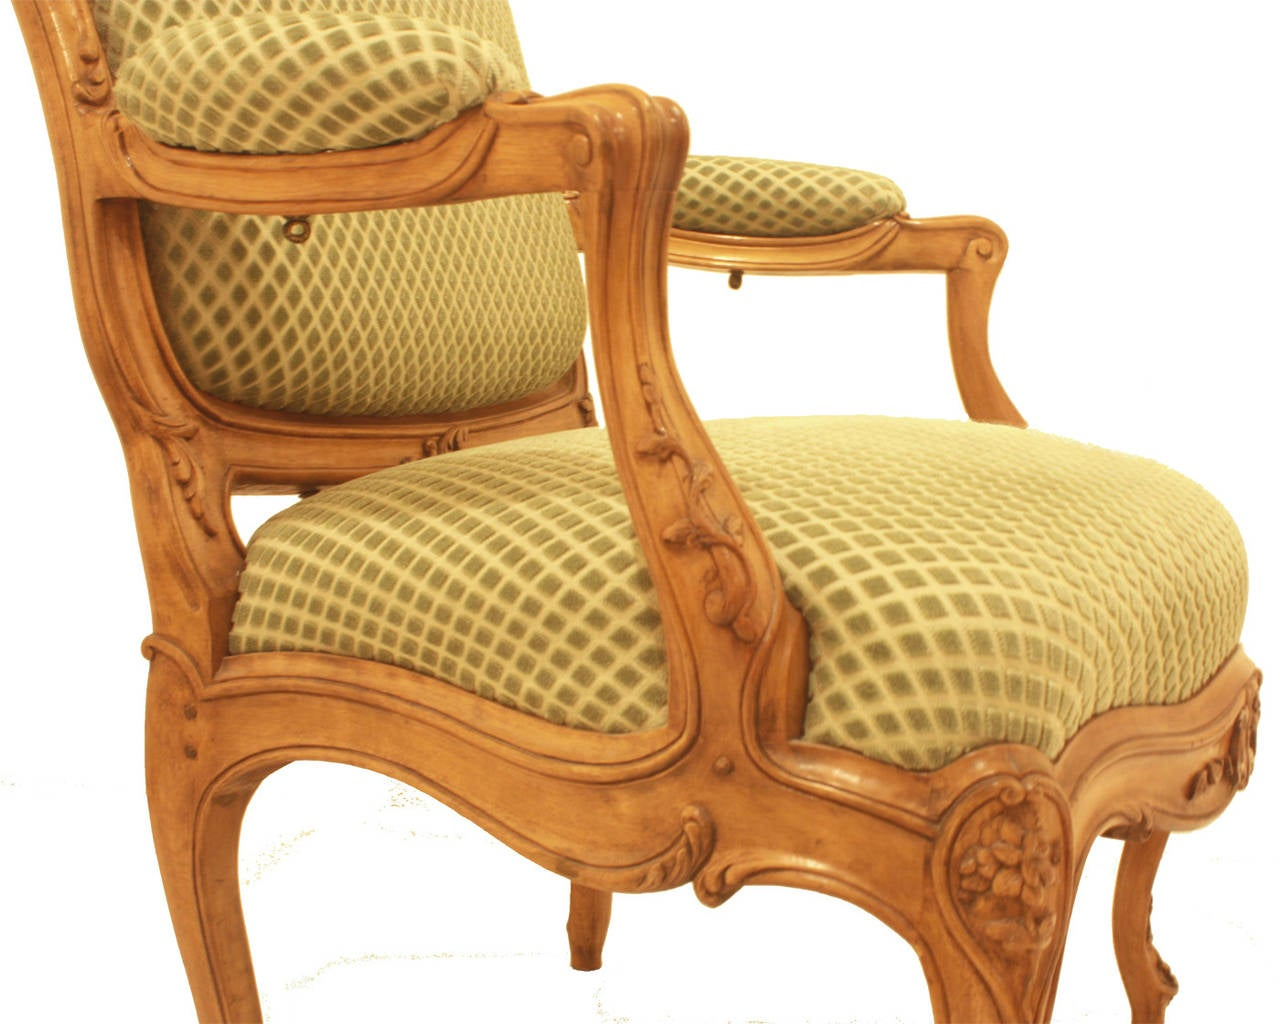 a pair of fine Louis XV style beechwood fauteuils with shaped backs featuring carved foliate designs on apron and seat back, all atop four wonderfully carved cabriole legs. Upholstered in green cut velvet in the shape of diamonds.